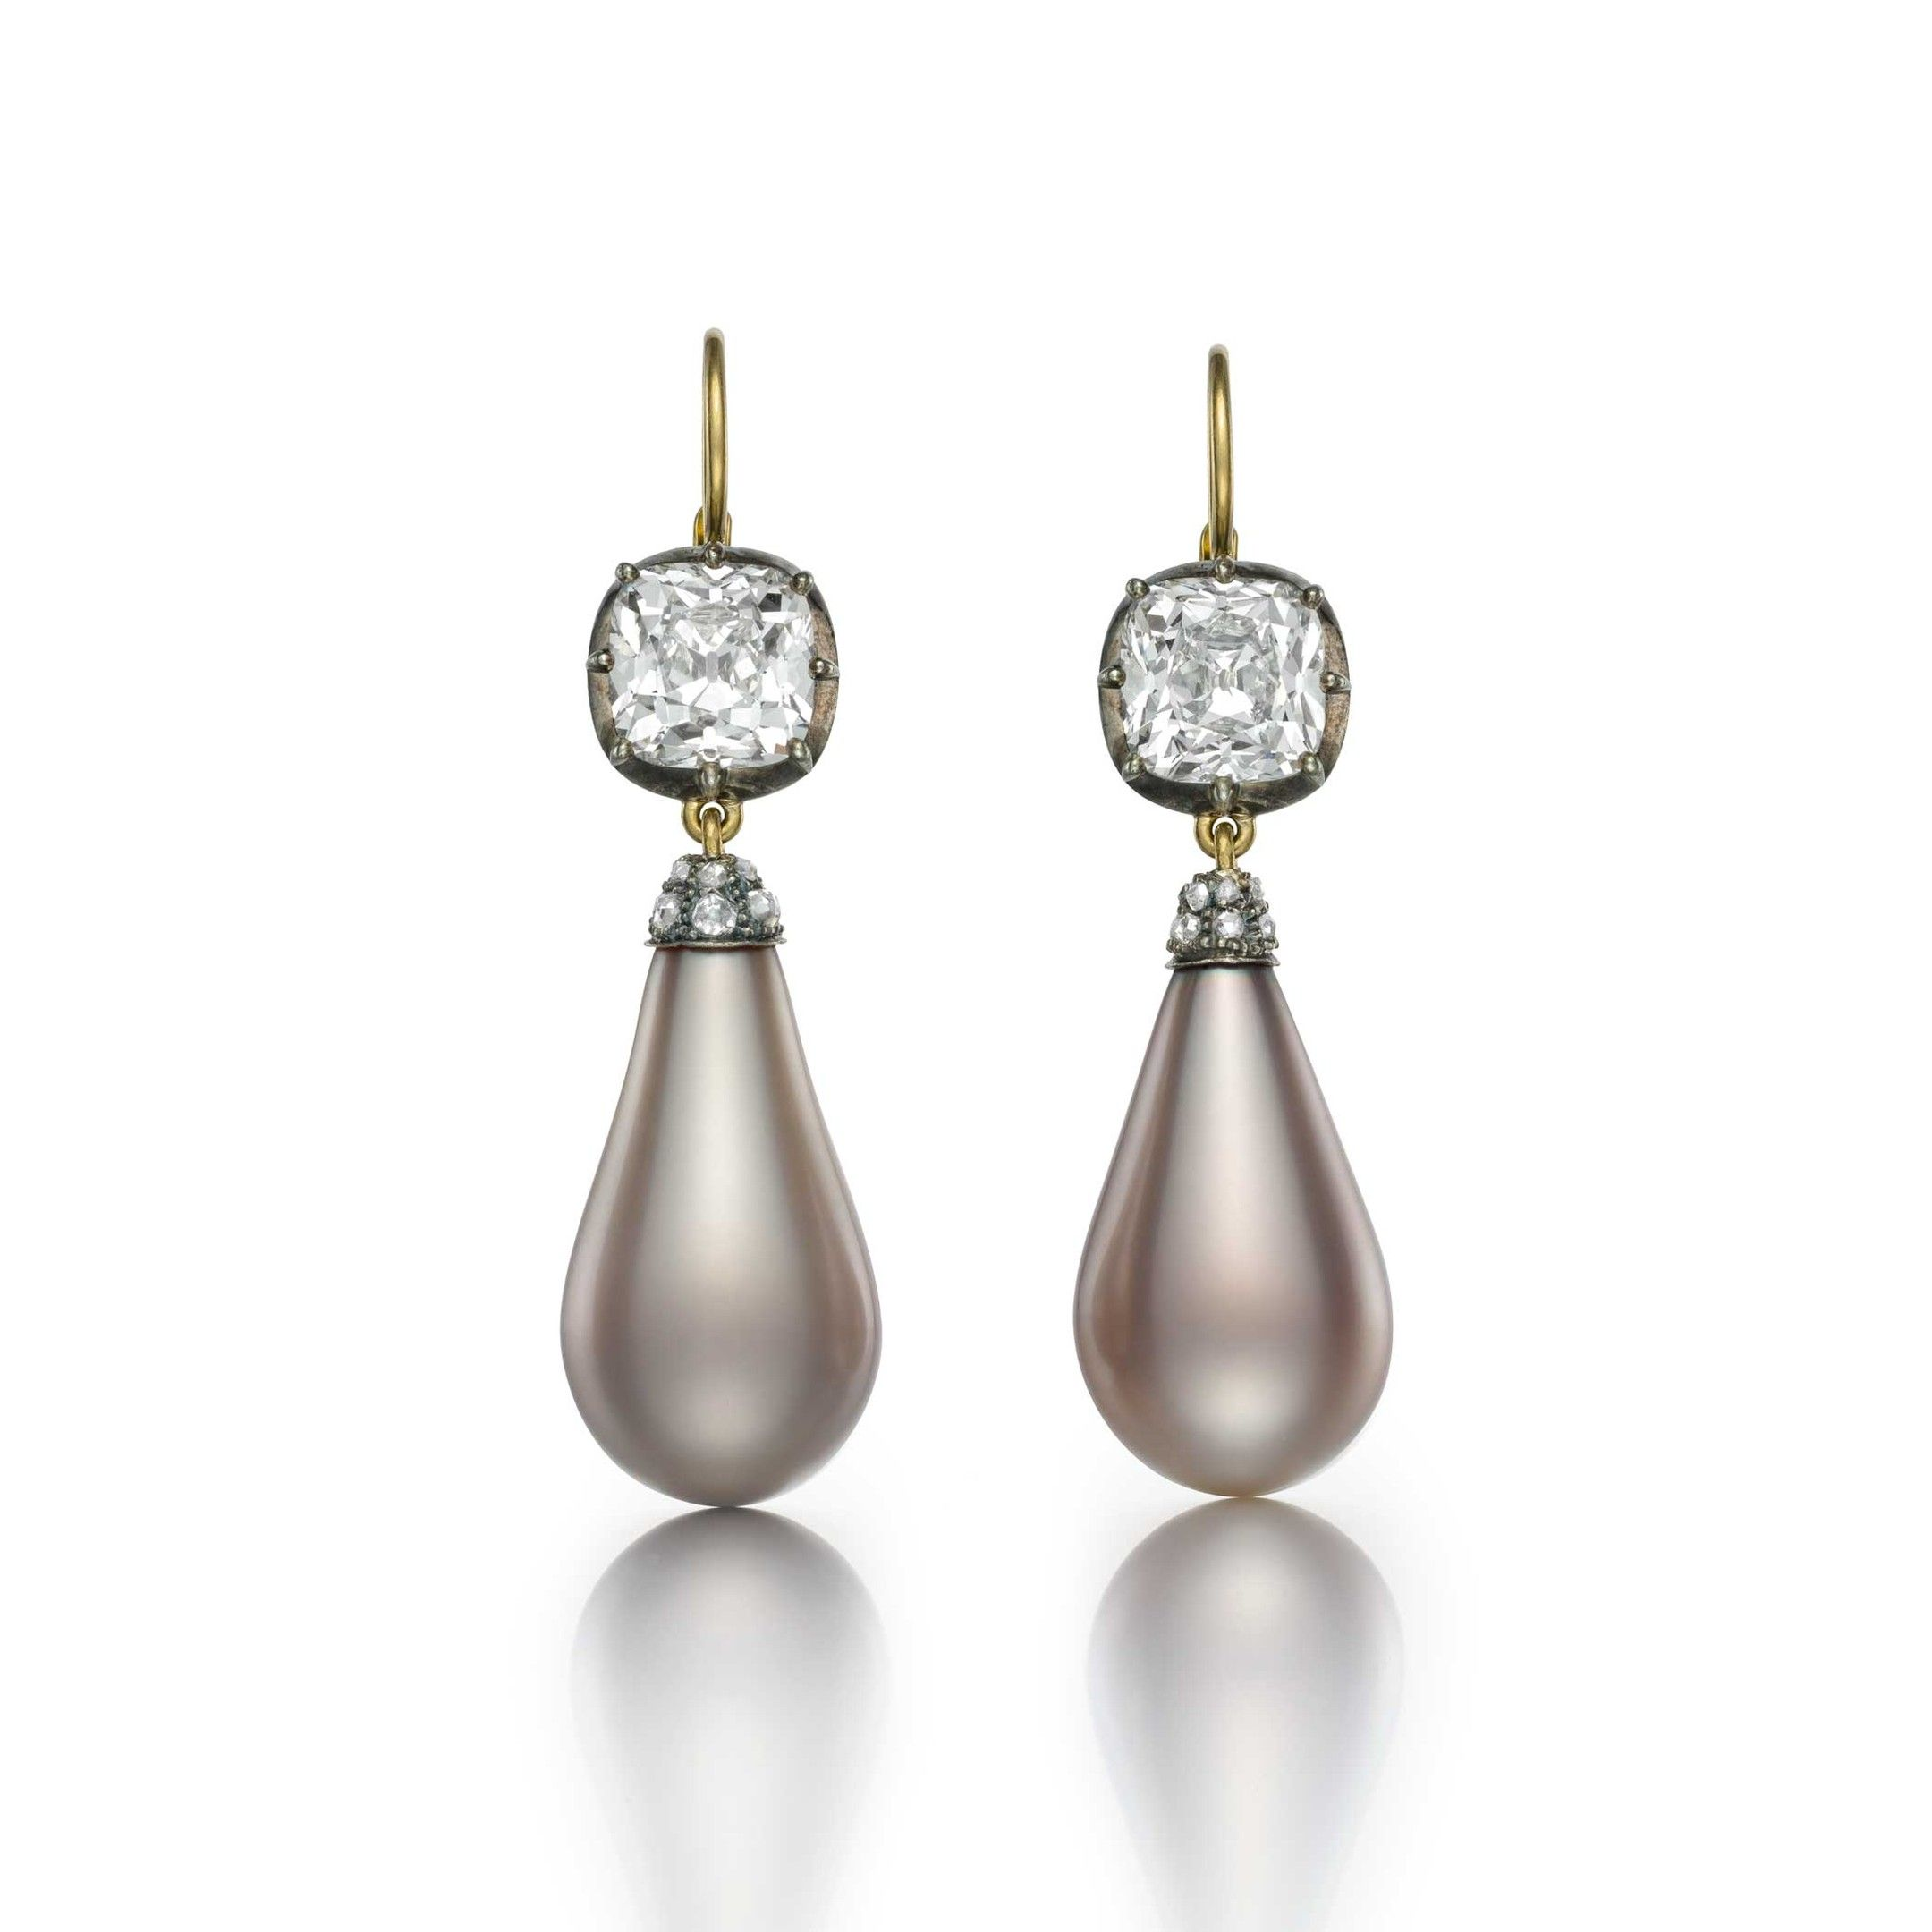 Most Expensive Pearls In The World